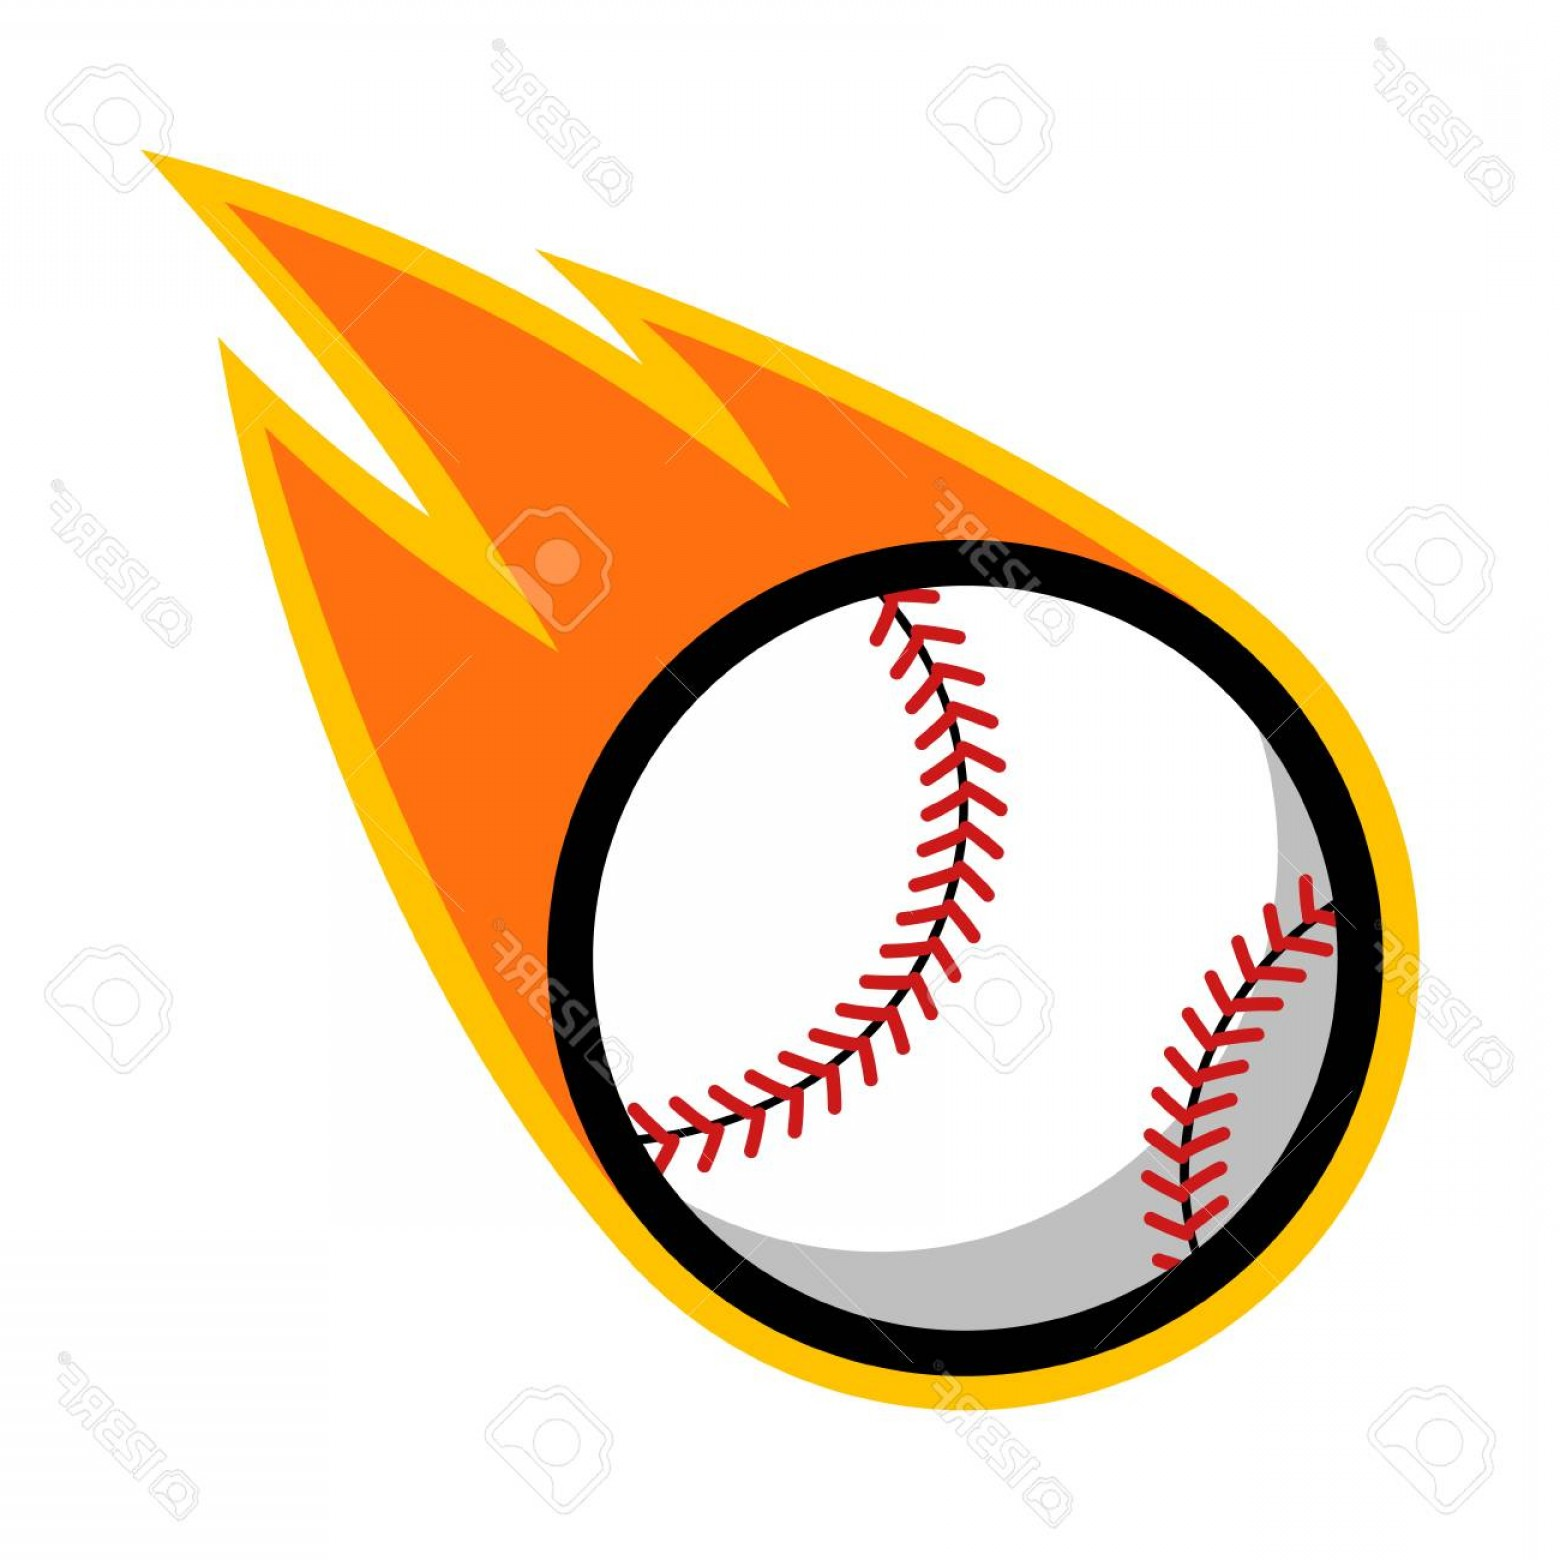 Baseball Tails Vector Clip Arts: Photostock Vector Baseball Sport Comet Fire Tail Flying Logo